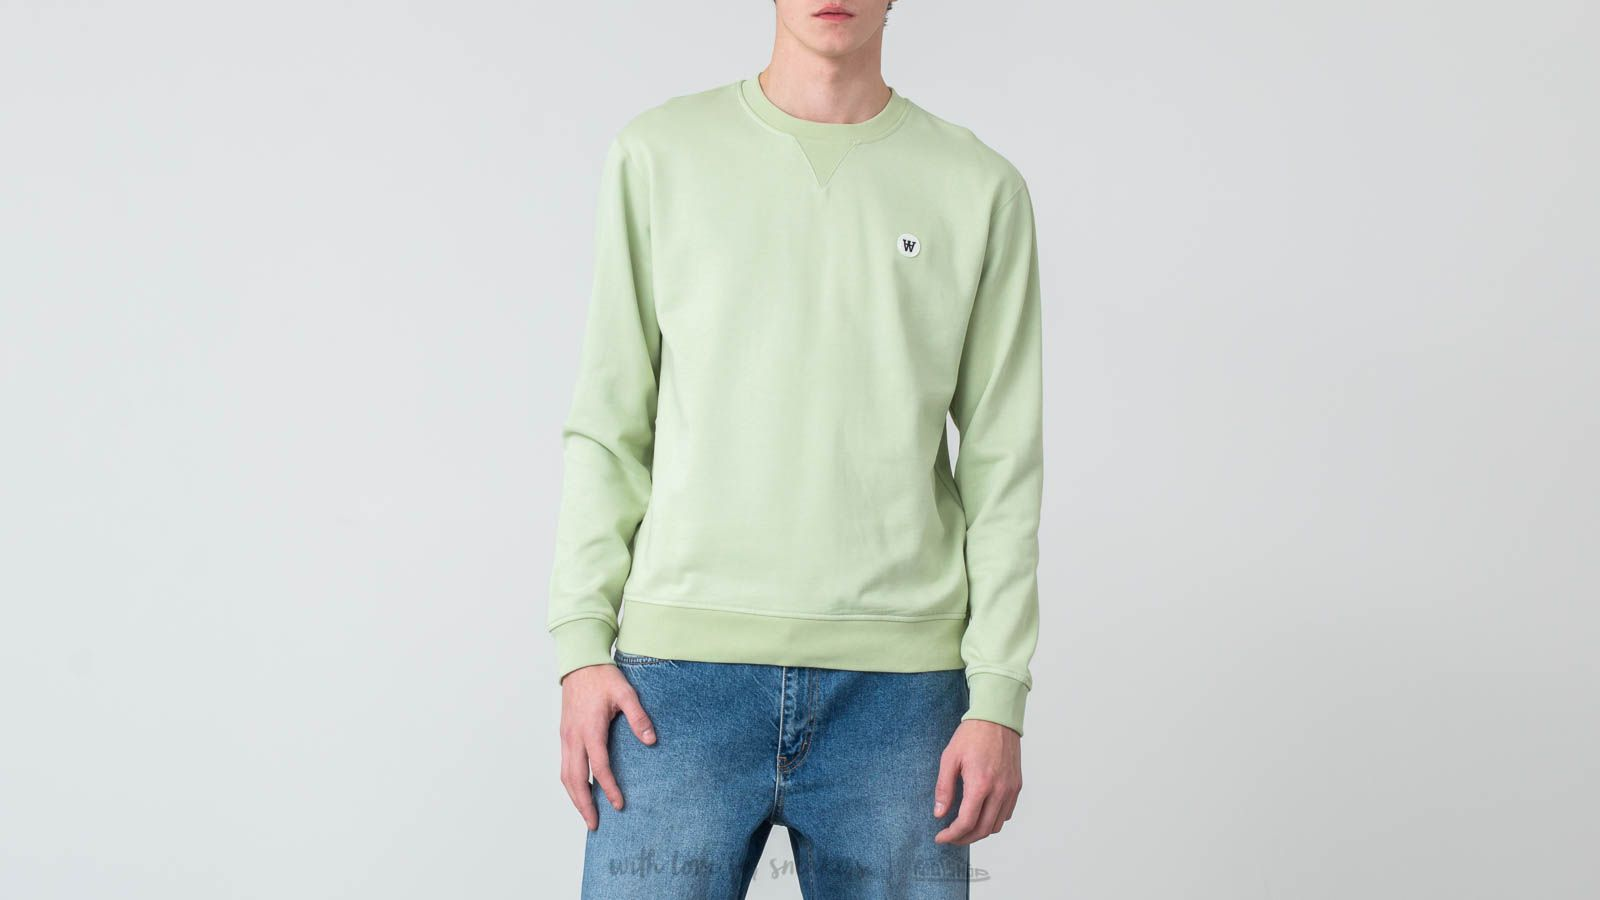 WOOD WOOD Tye Sweatshirt